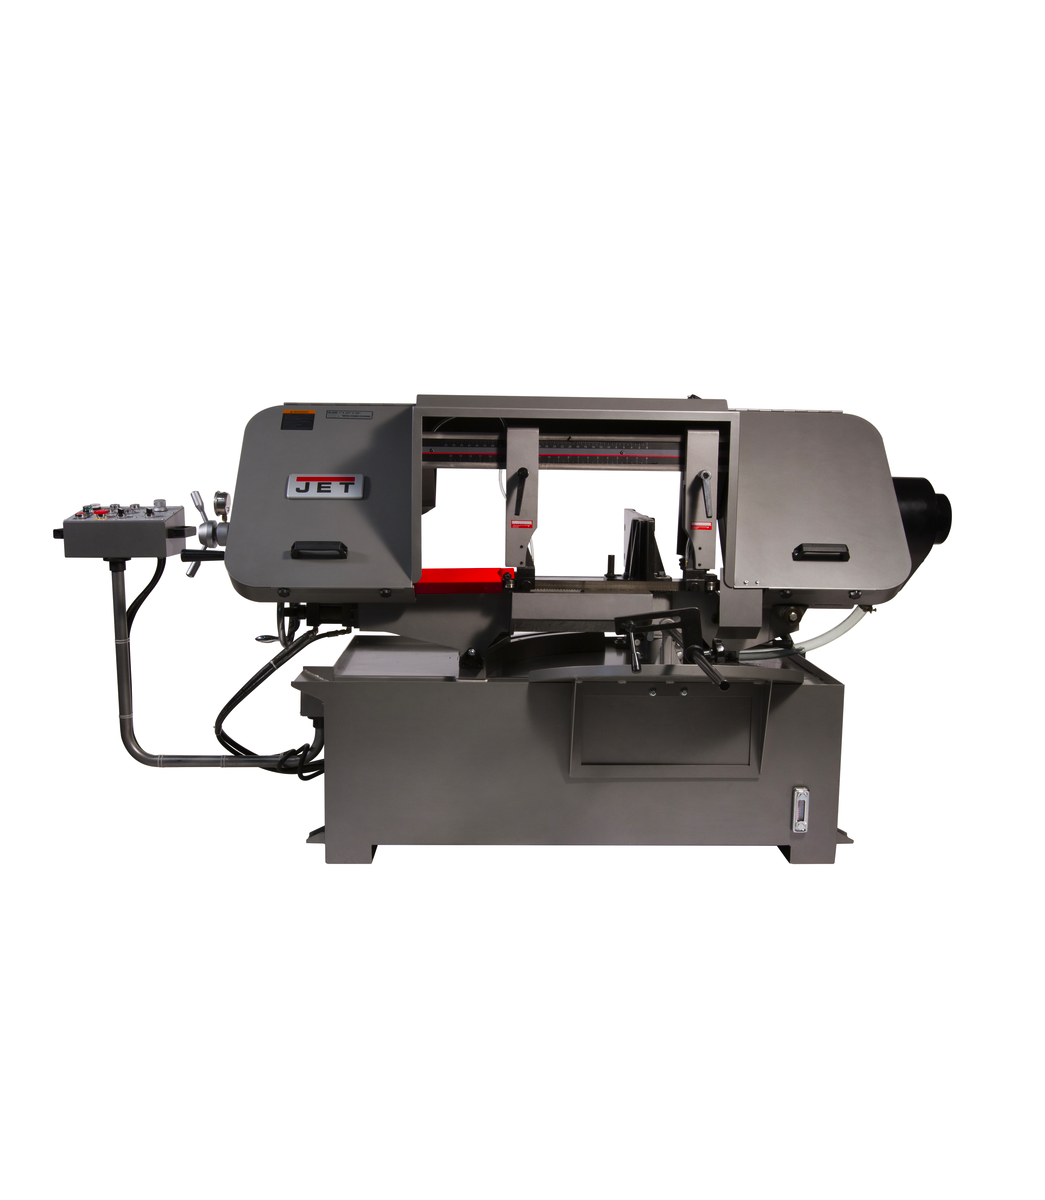 "HBS-1220MSAH, 12"" x 20"" Semi-Automatic Mitering Variable Speed Bandsaw with Hydraulic Vise"